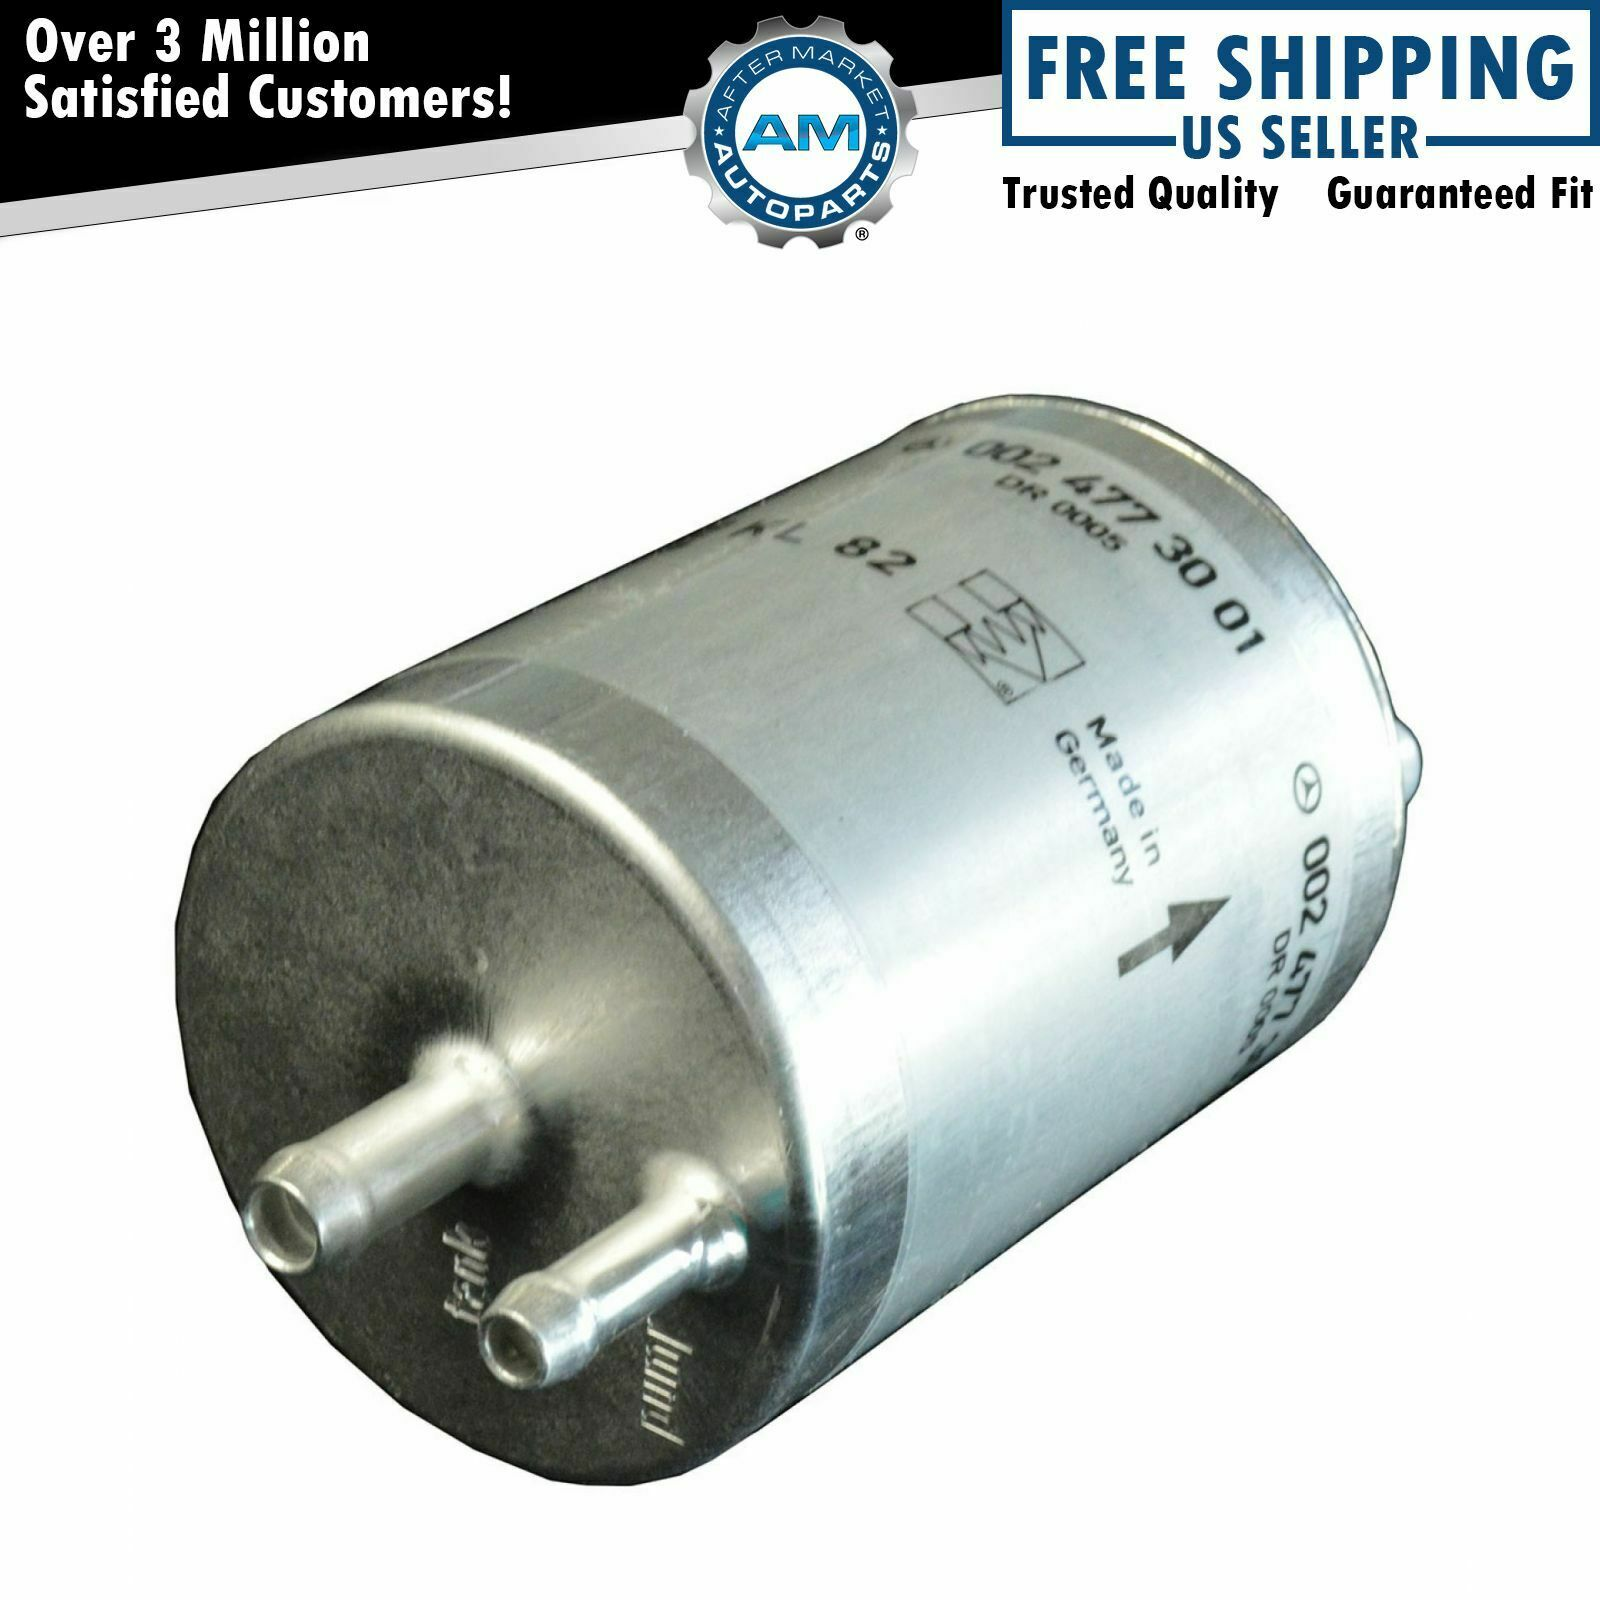 Mercedes Benz Fuel Filter For C230 C280 Cl600 Clk500 S430 Slk230 2000 Ml320 Sl500 1 Of 5only 4 Available